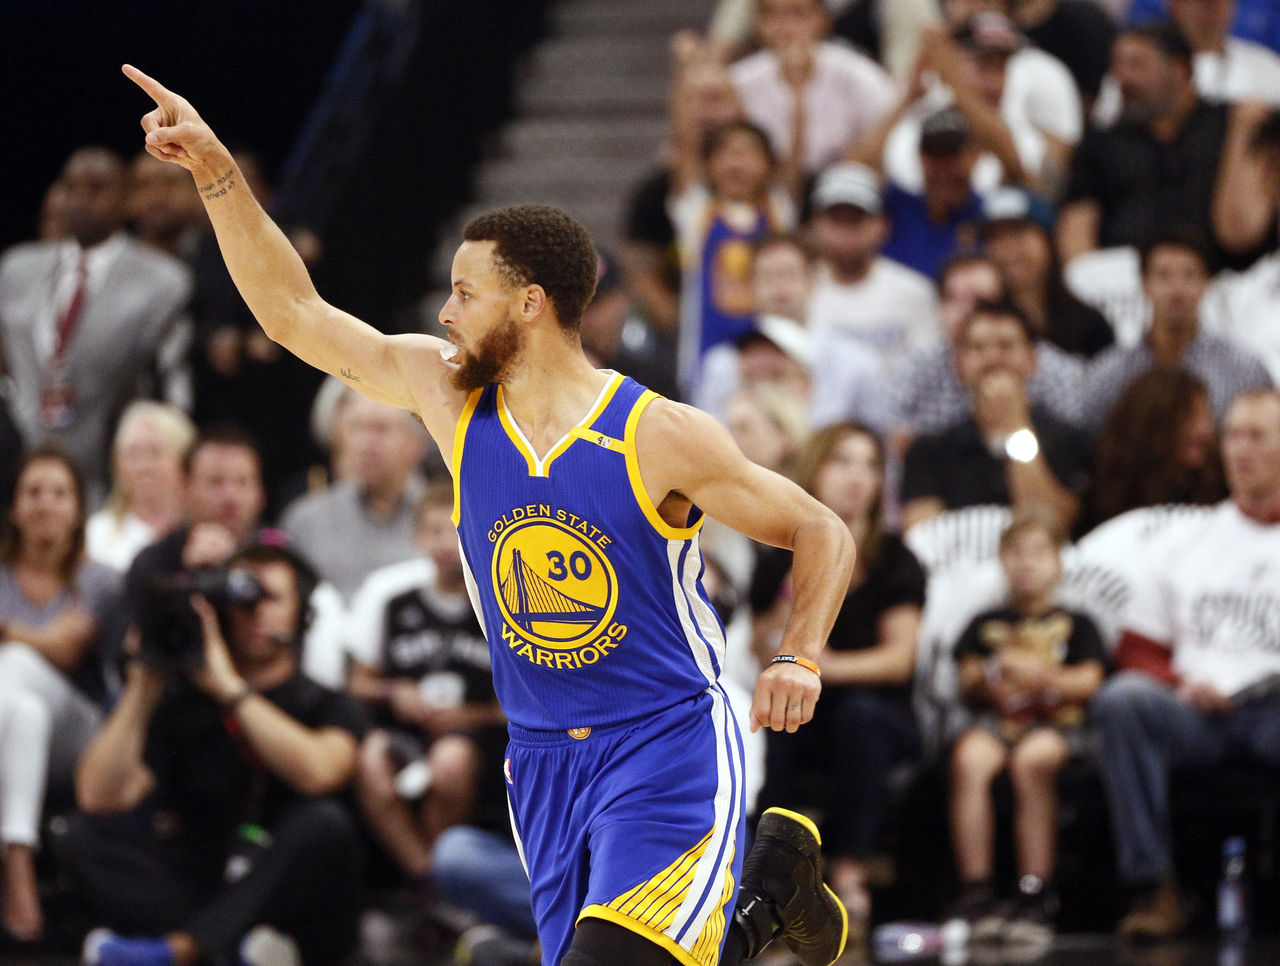 Cropped 2017 05 21t020916z 1351837143 nocid rtrmadp 3 nba playoffs golden state warriors at san antonio spurs